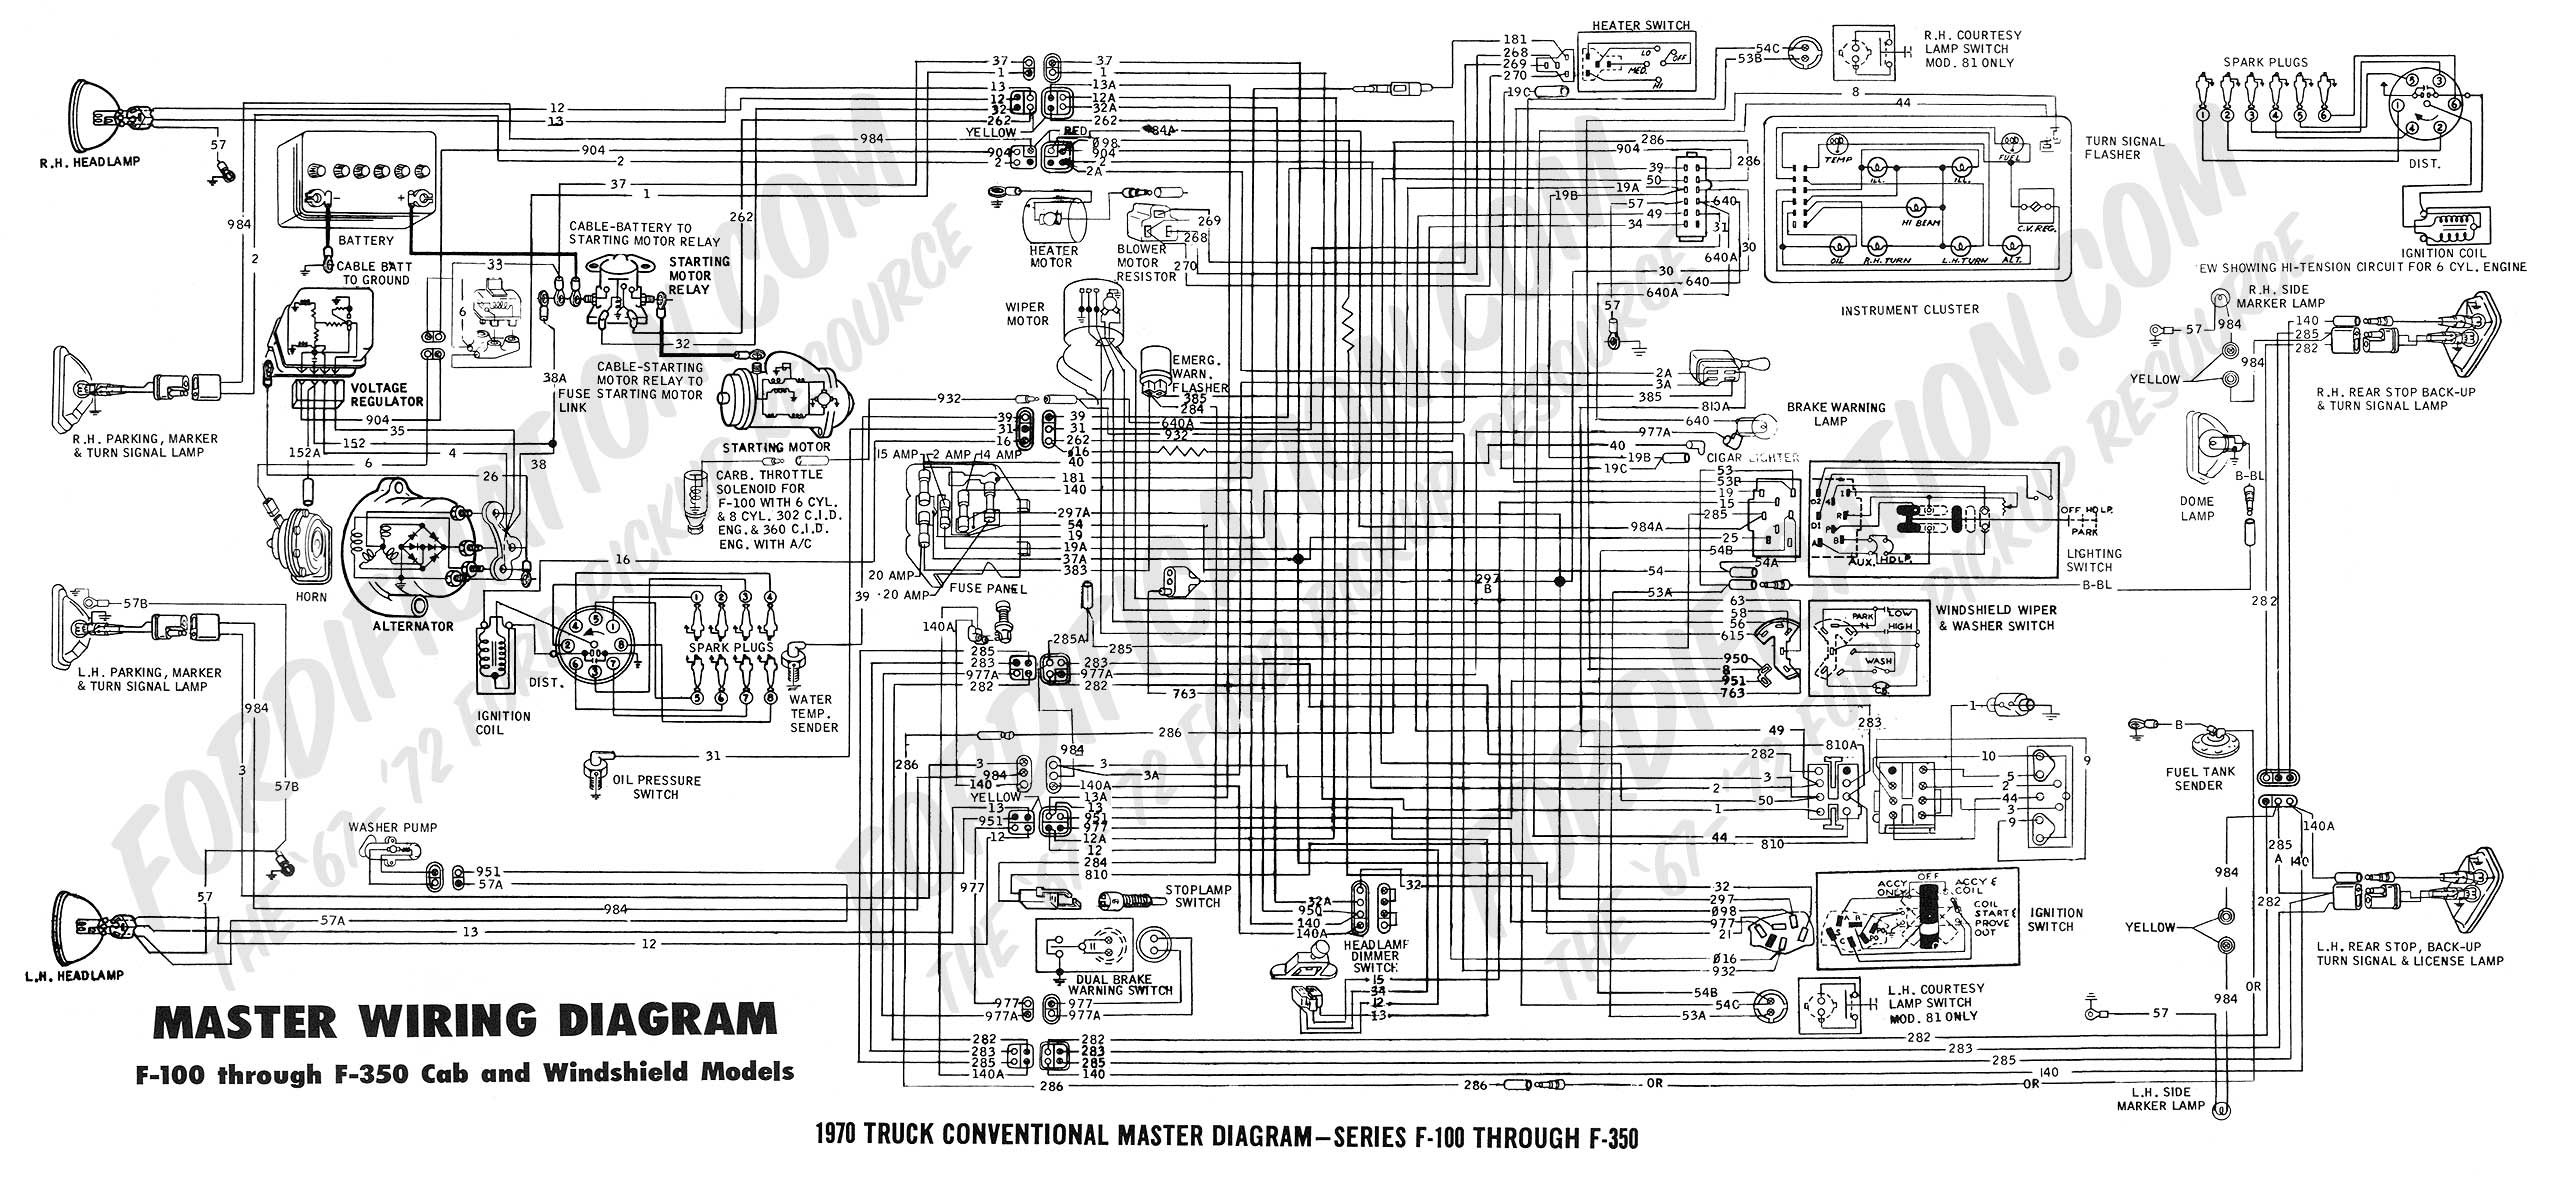 2000 freightliner wiring diagram 2005 freightliner columbia radio wiring diagram images wiring wiring diagram along freightliner m2 headlight as